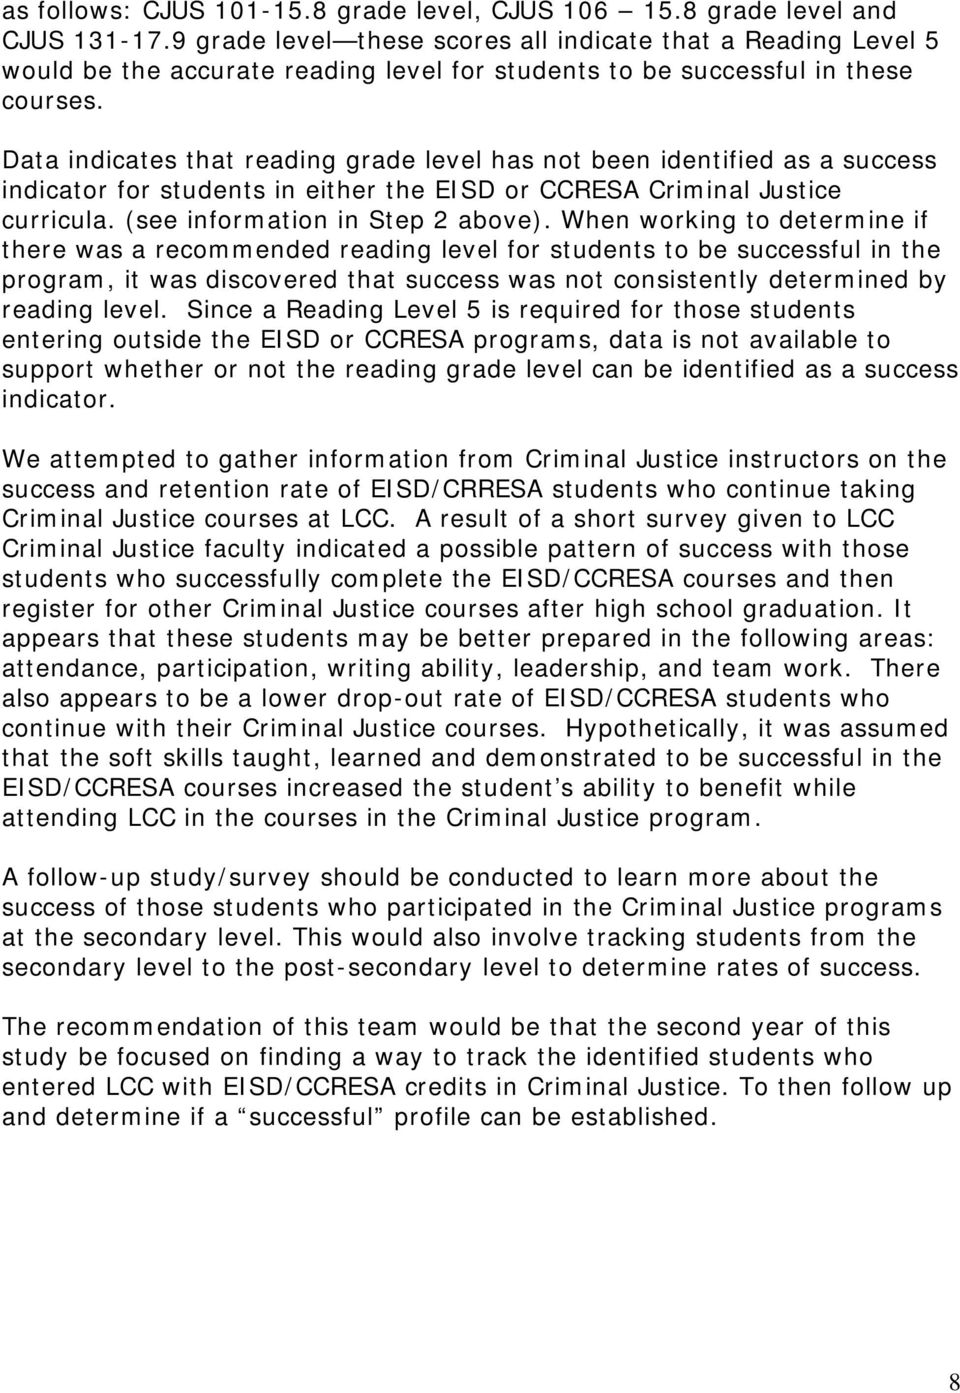 Data indicates that reading grade level has not been identified as a success indicator for students in either the EISD or CCRESA Criminal Justice curricula. (see information in Step 2 above).